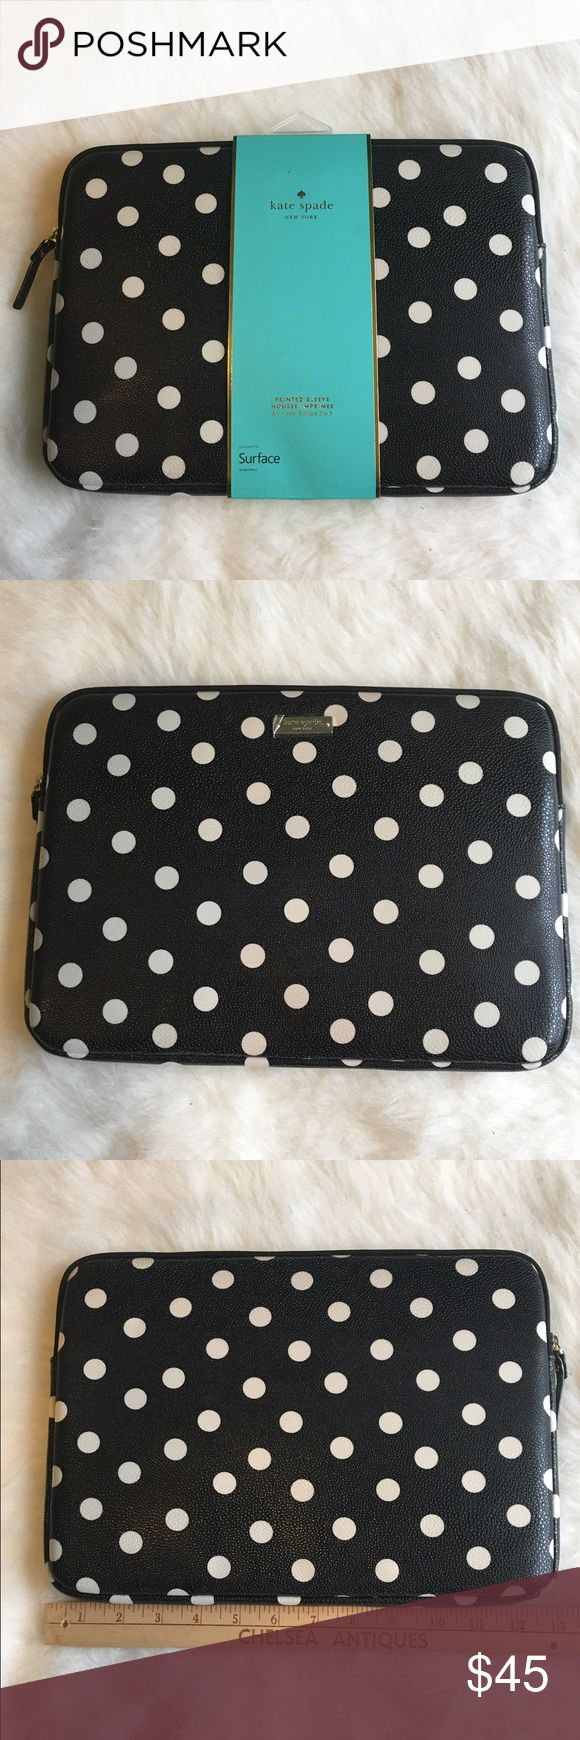 "Kate Spade Microsoft pro 3/11"" MacBook Air sleeve This is a Kate Spade Microsoft 3 and 11 inch MacBook Air sleeve. It's has protection and is easily cleanable. 💞BRAND NEW NEVER USED💞🚫NO TRADES🚫 kate spade Accessories Laptop Cases"